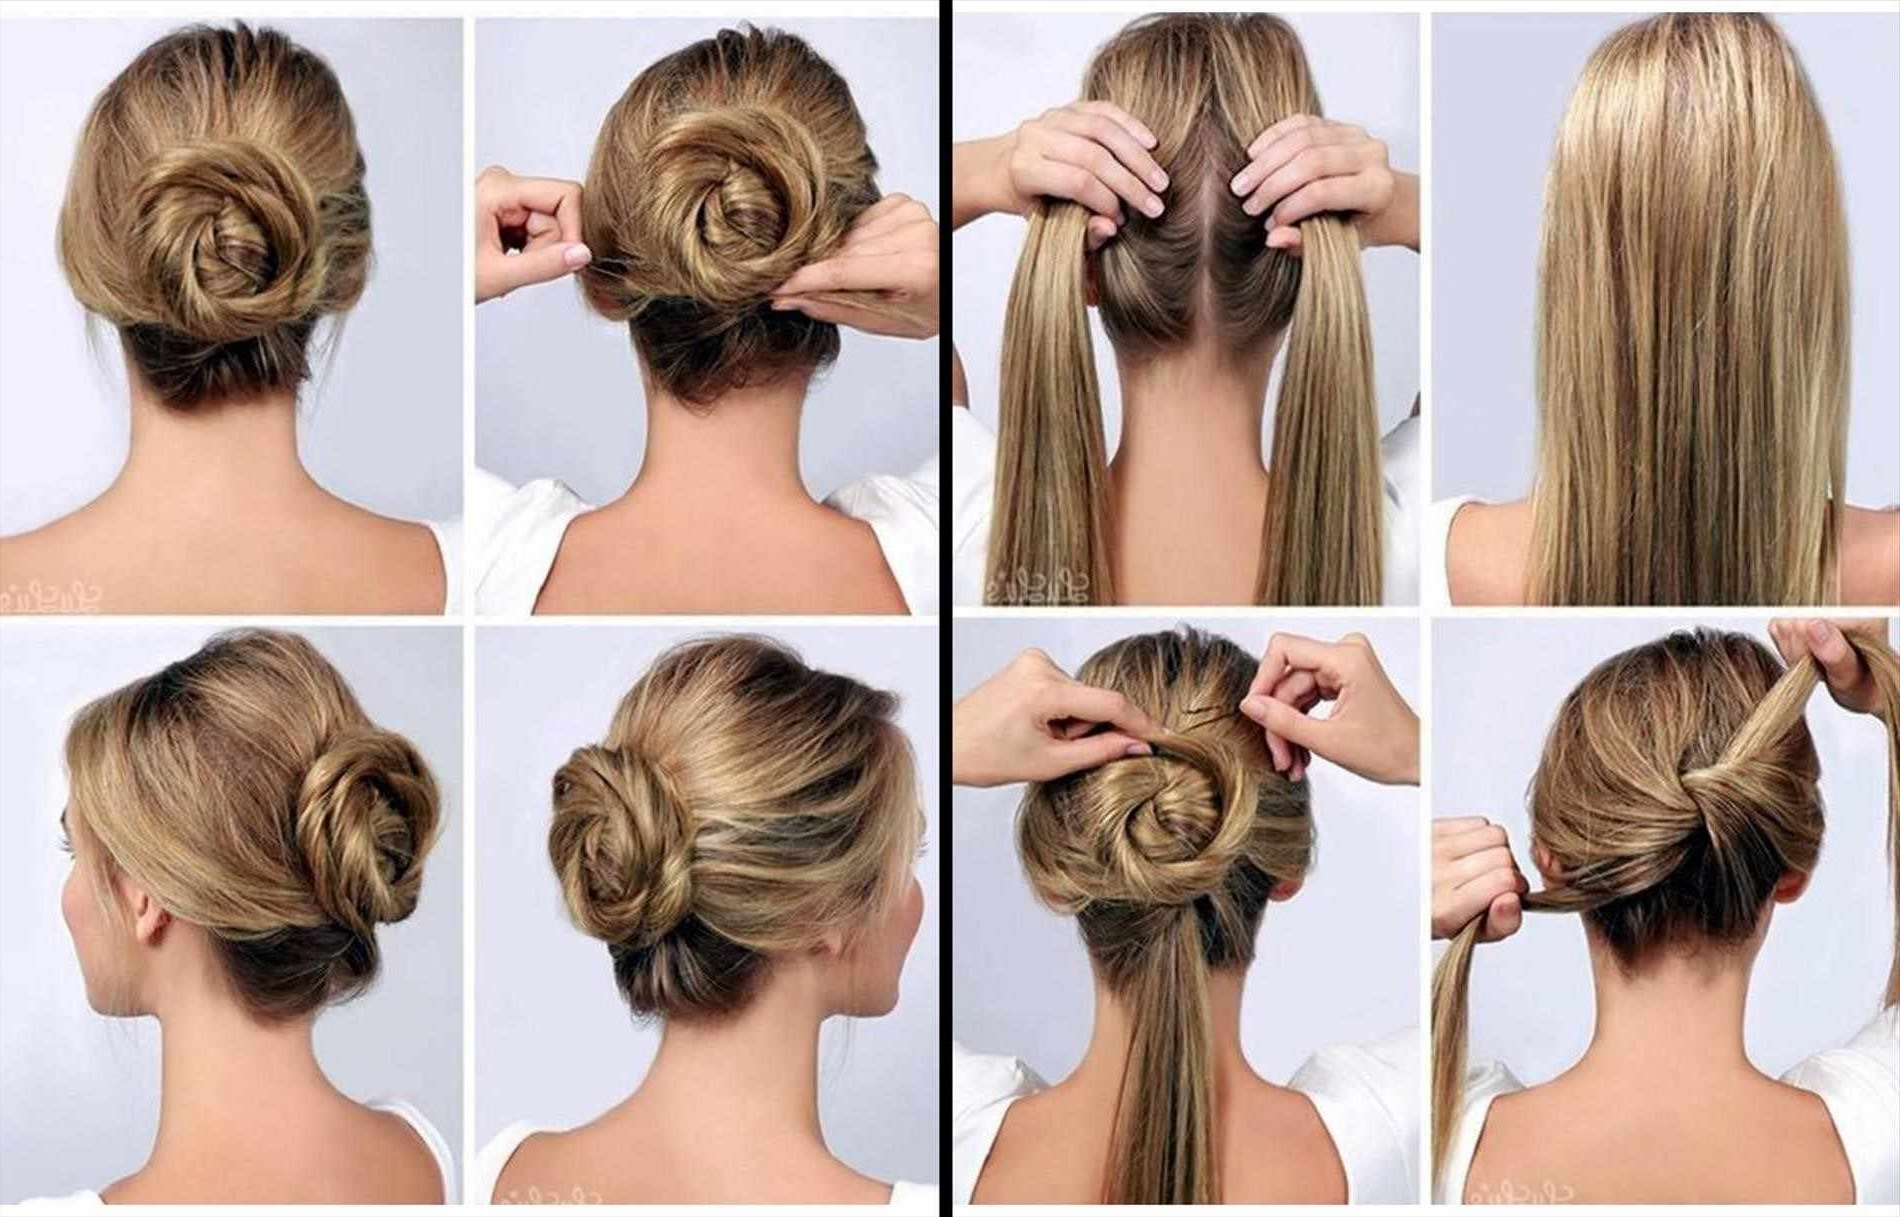 Youtube Trendy Updo Hairstyles Tutorials Easy Cute Hair Trendy Low For Updo Low Bun Hairstyles (View 15 of 15)